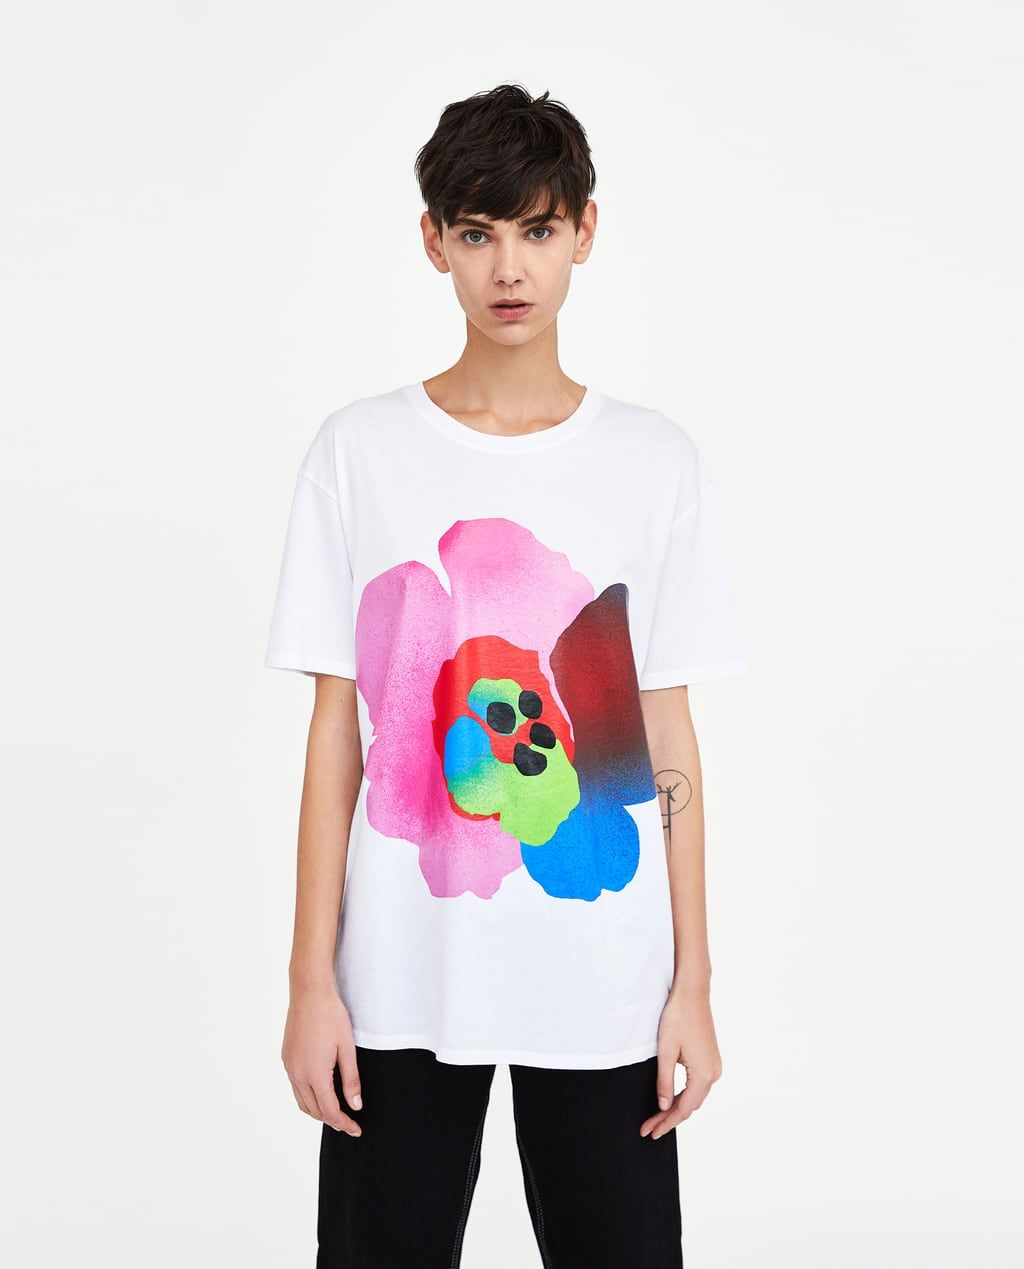 Dames T Shirts Nieuwe Collectie Online Zara Belgie T Shirts For Women Zara Print T Shirt